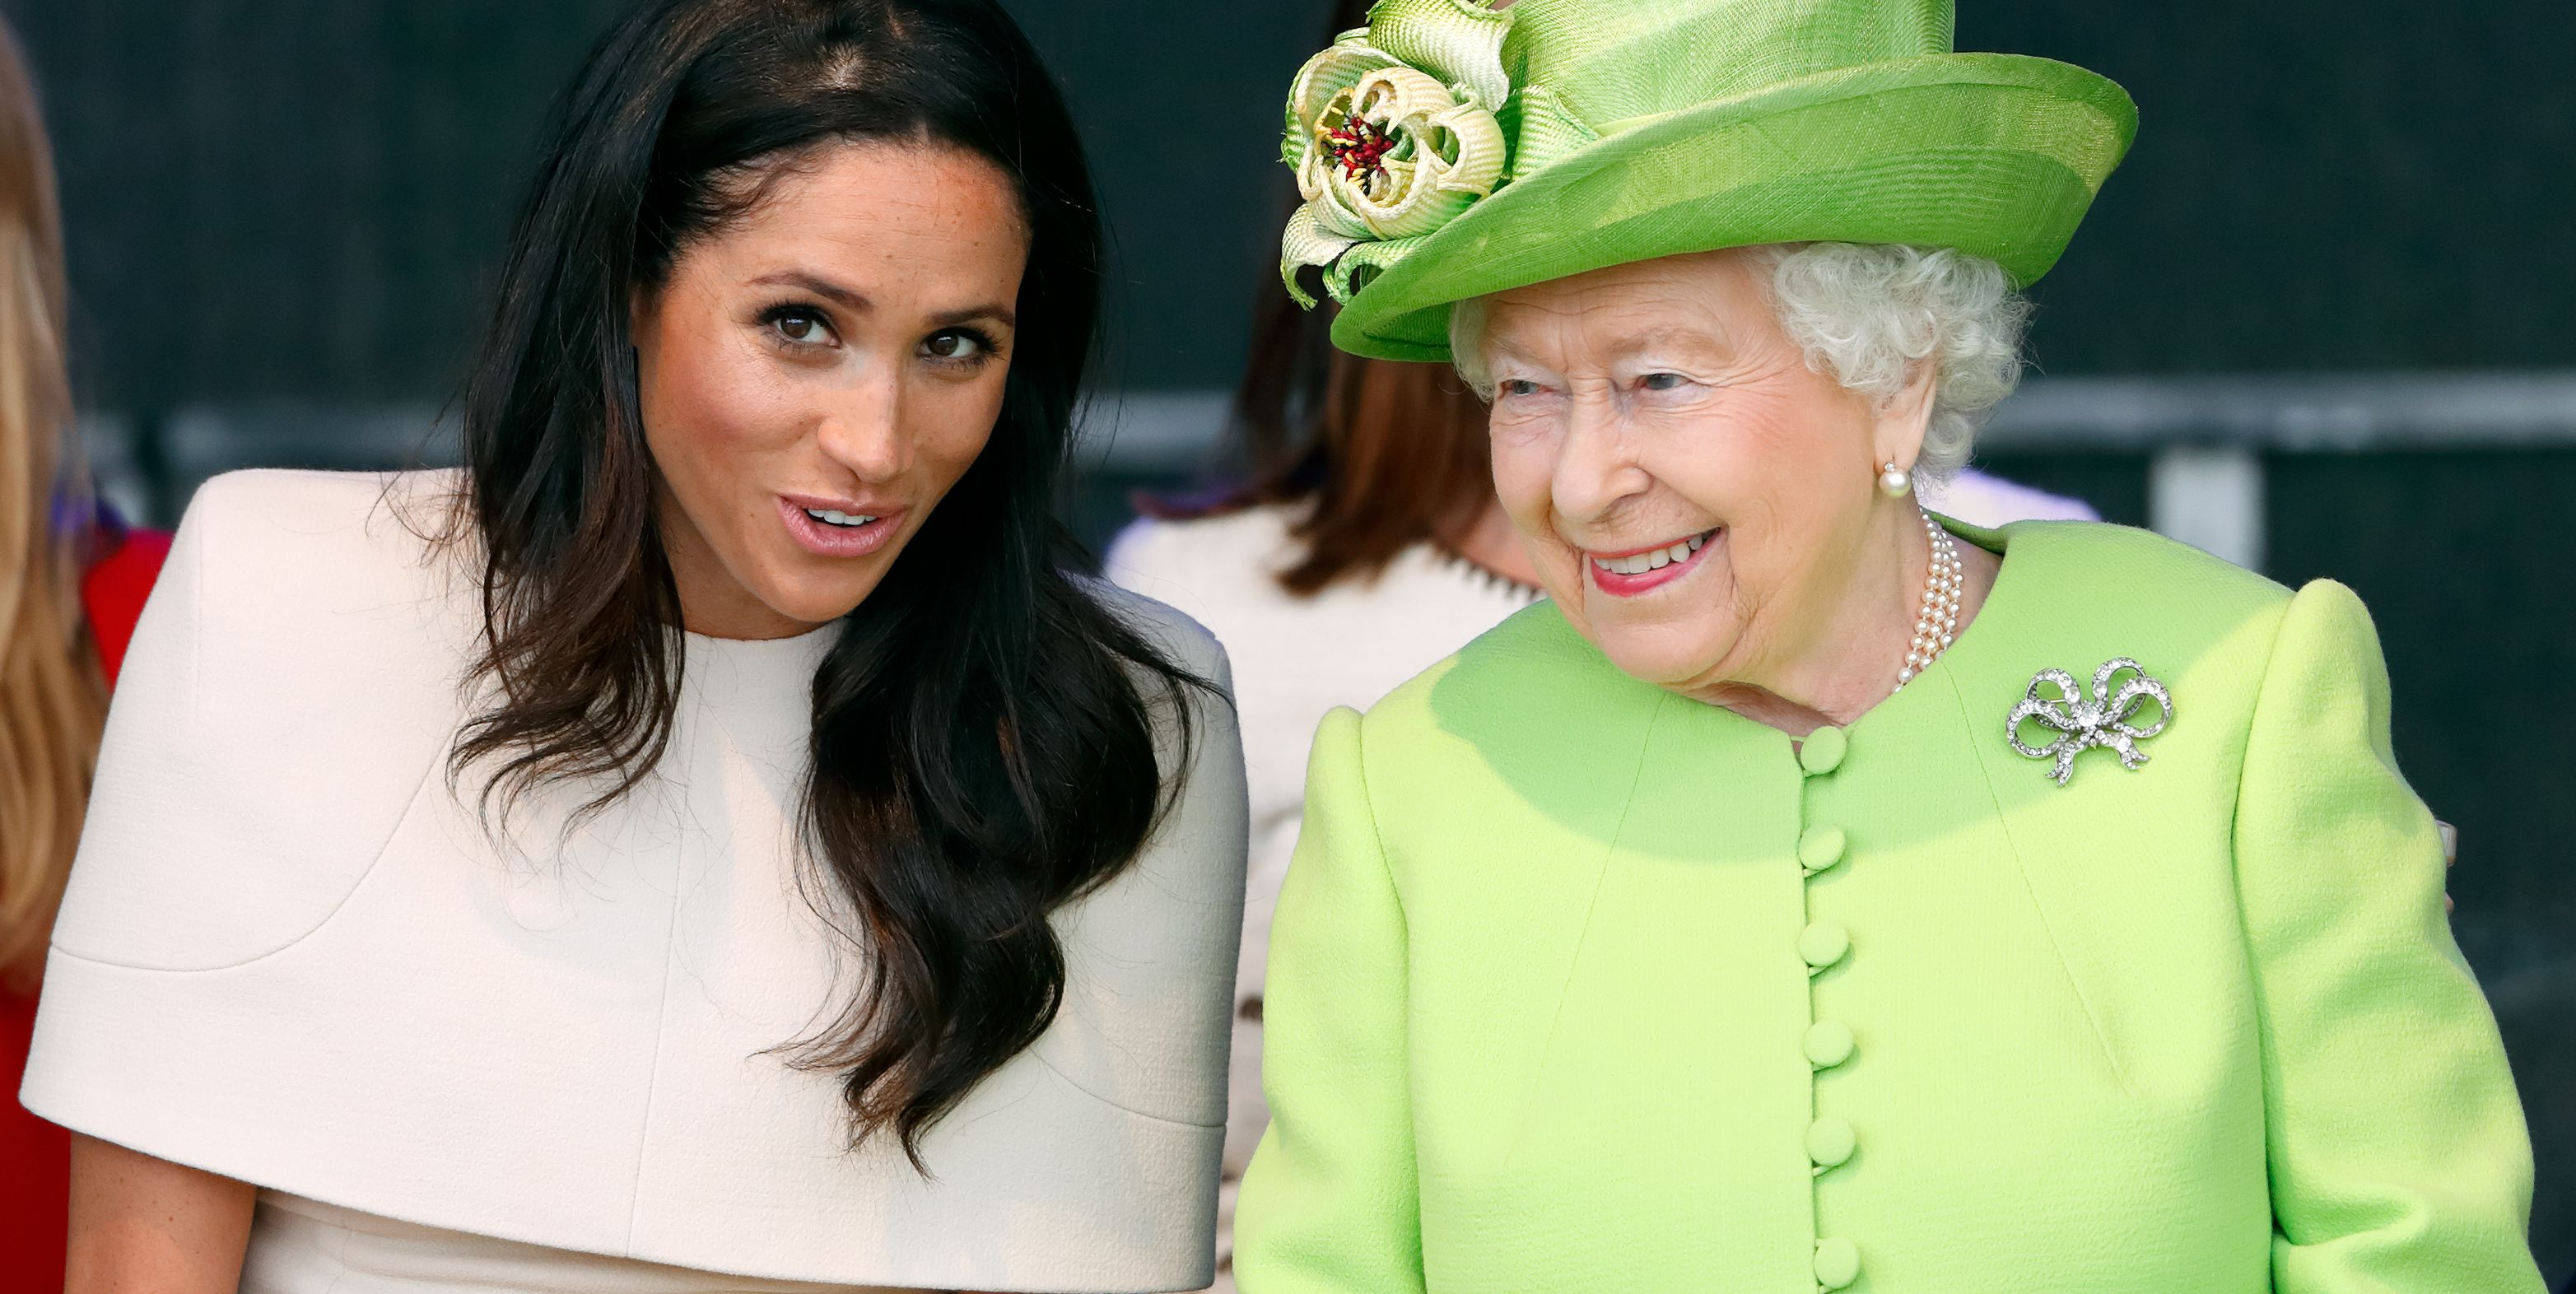 Queen Elizabeth Is Reportedly Planning to Hand Over Some of Her Royal Duties to Meghan Markle